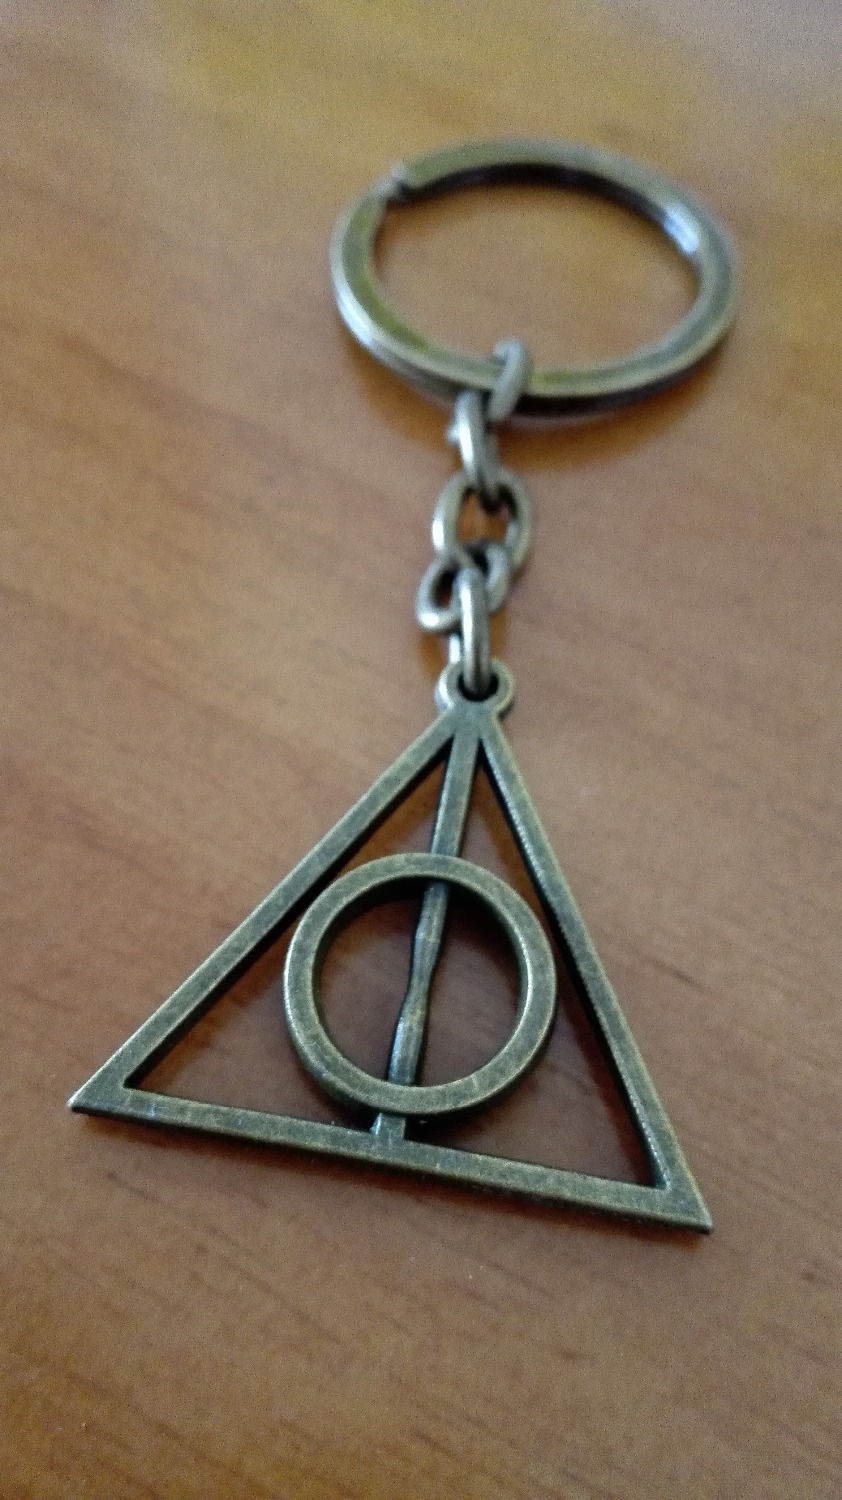 The Deathly Hallows Key Buckle Charm Antique Bronze Accessory Key Chain / Ring